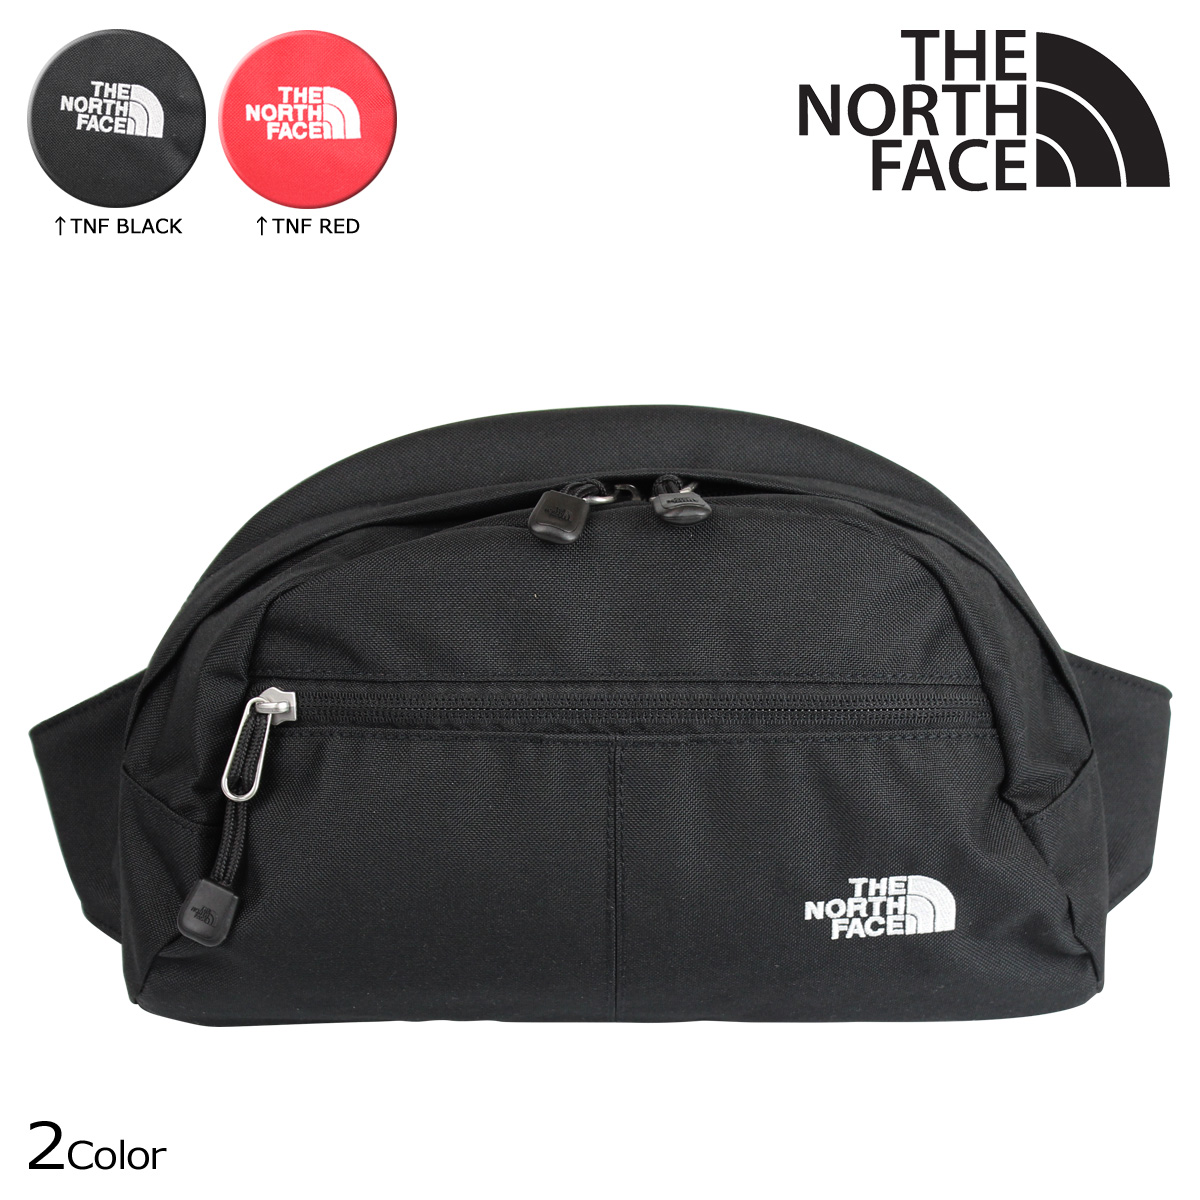 Allsports Laquo Soon Raquo 10 21 Days Will Be In Stock North Face The Mens Womens Waist Bag Hip Asua 2 Color Roo